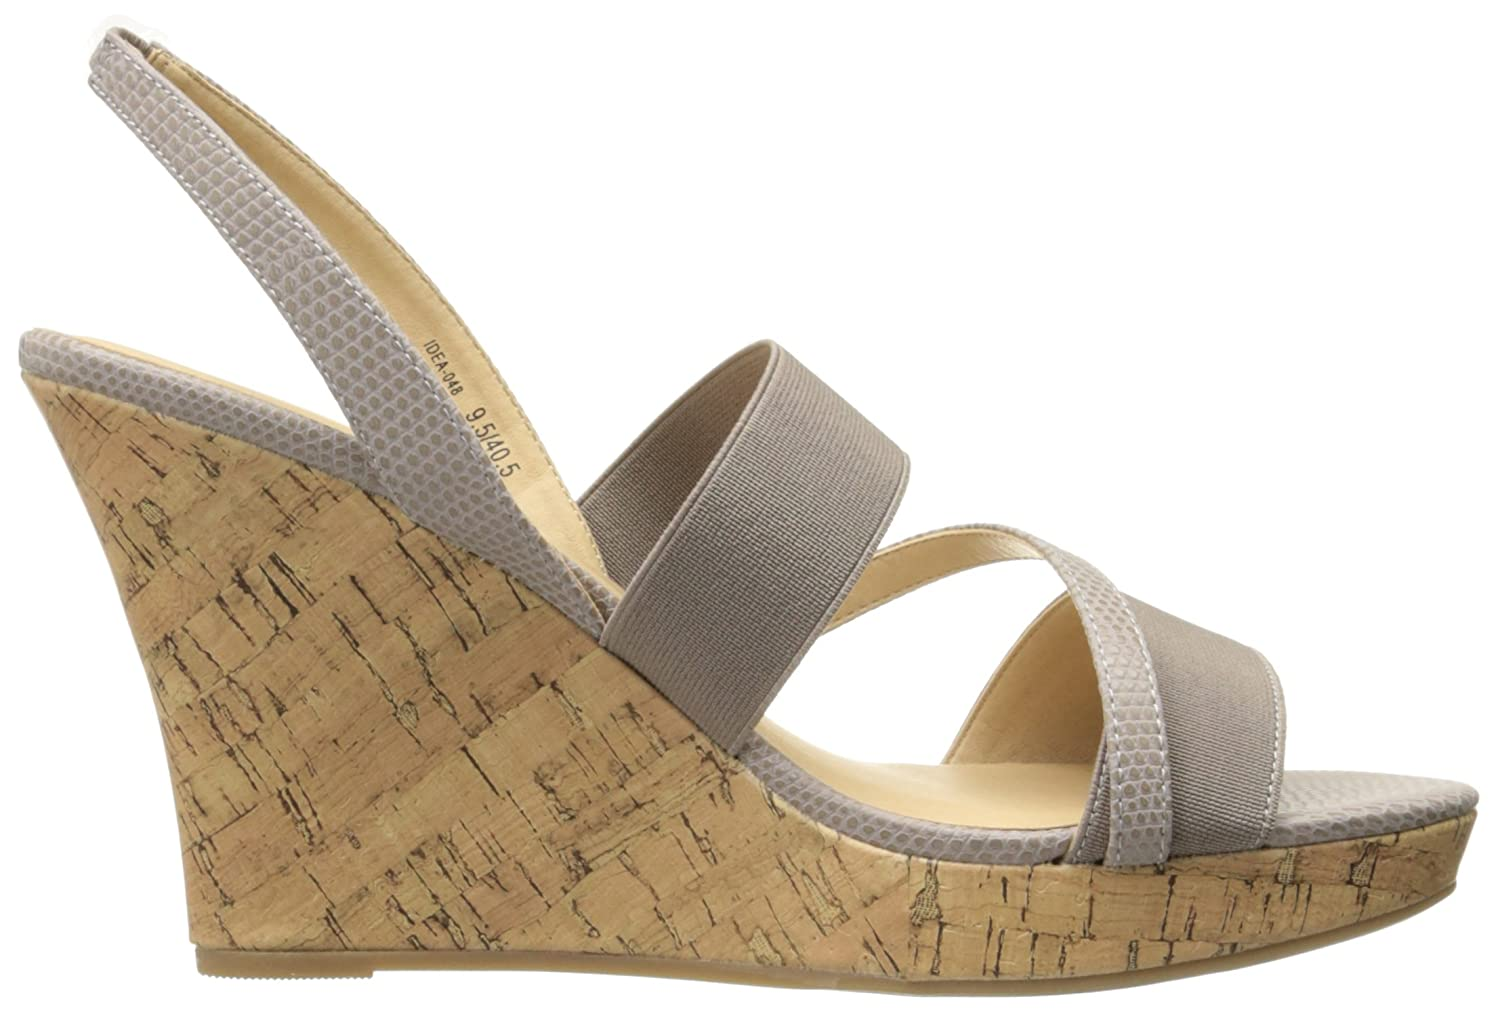 CL by Chinese Laundry Women's Intend Wedge Pump Sandal B01MZF3UL1 8 B(M) US|Taupe Lizard